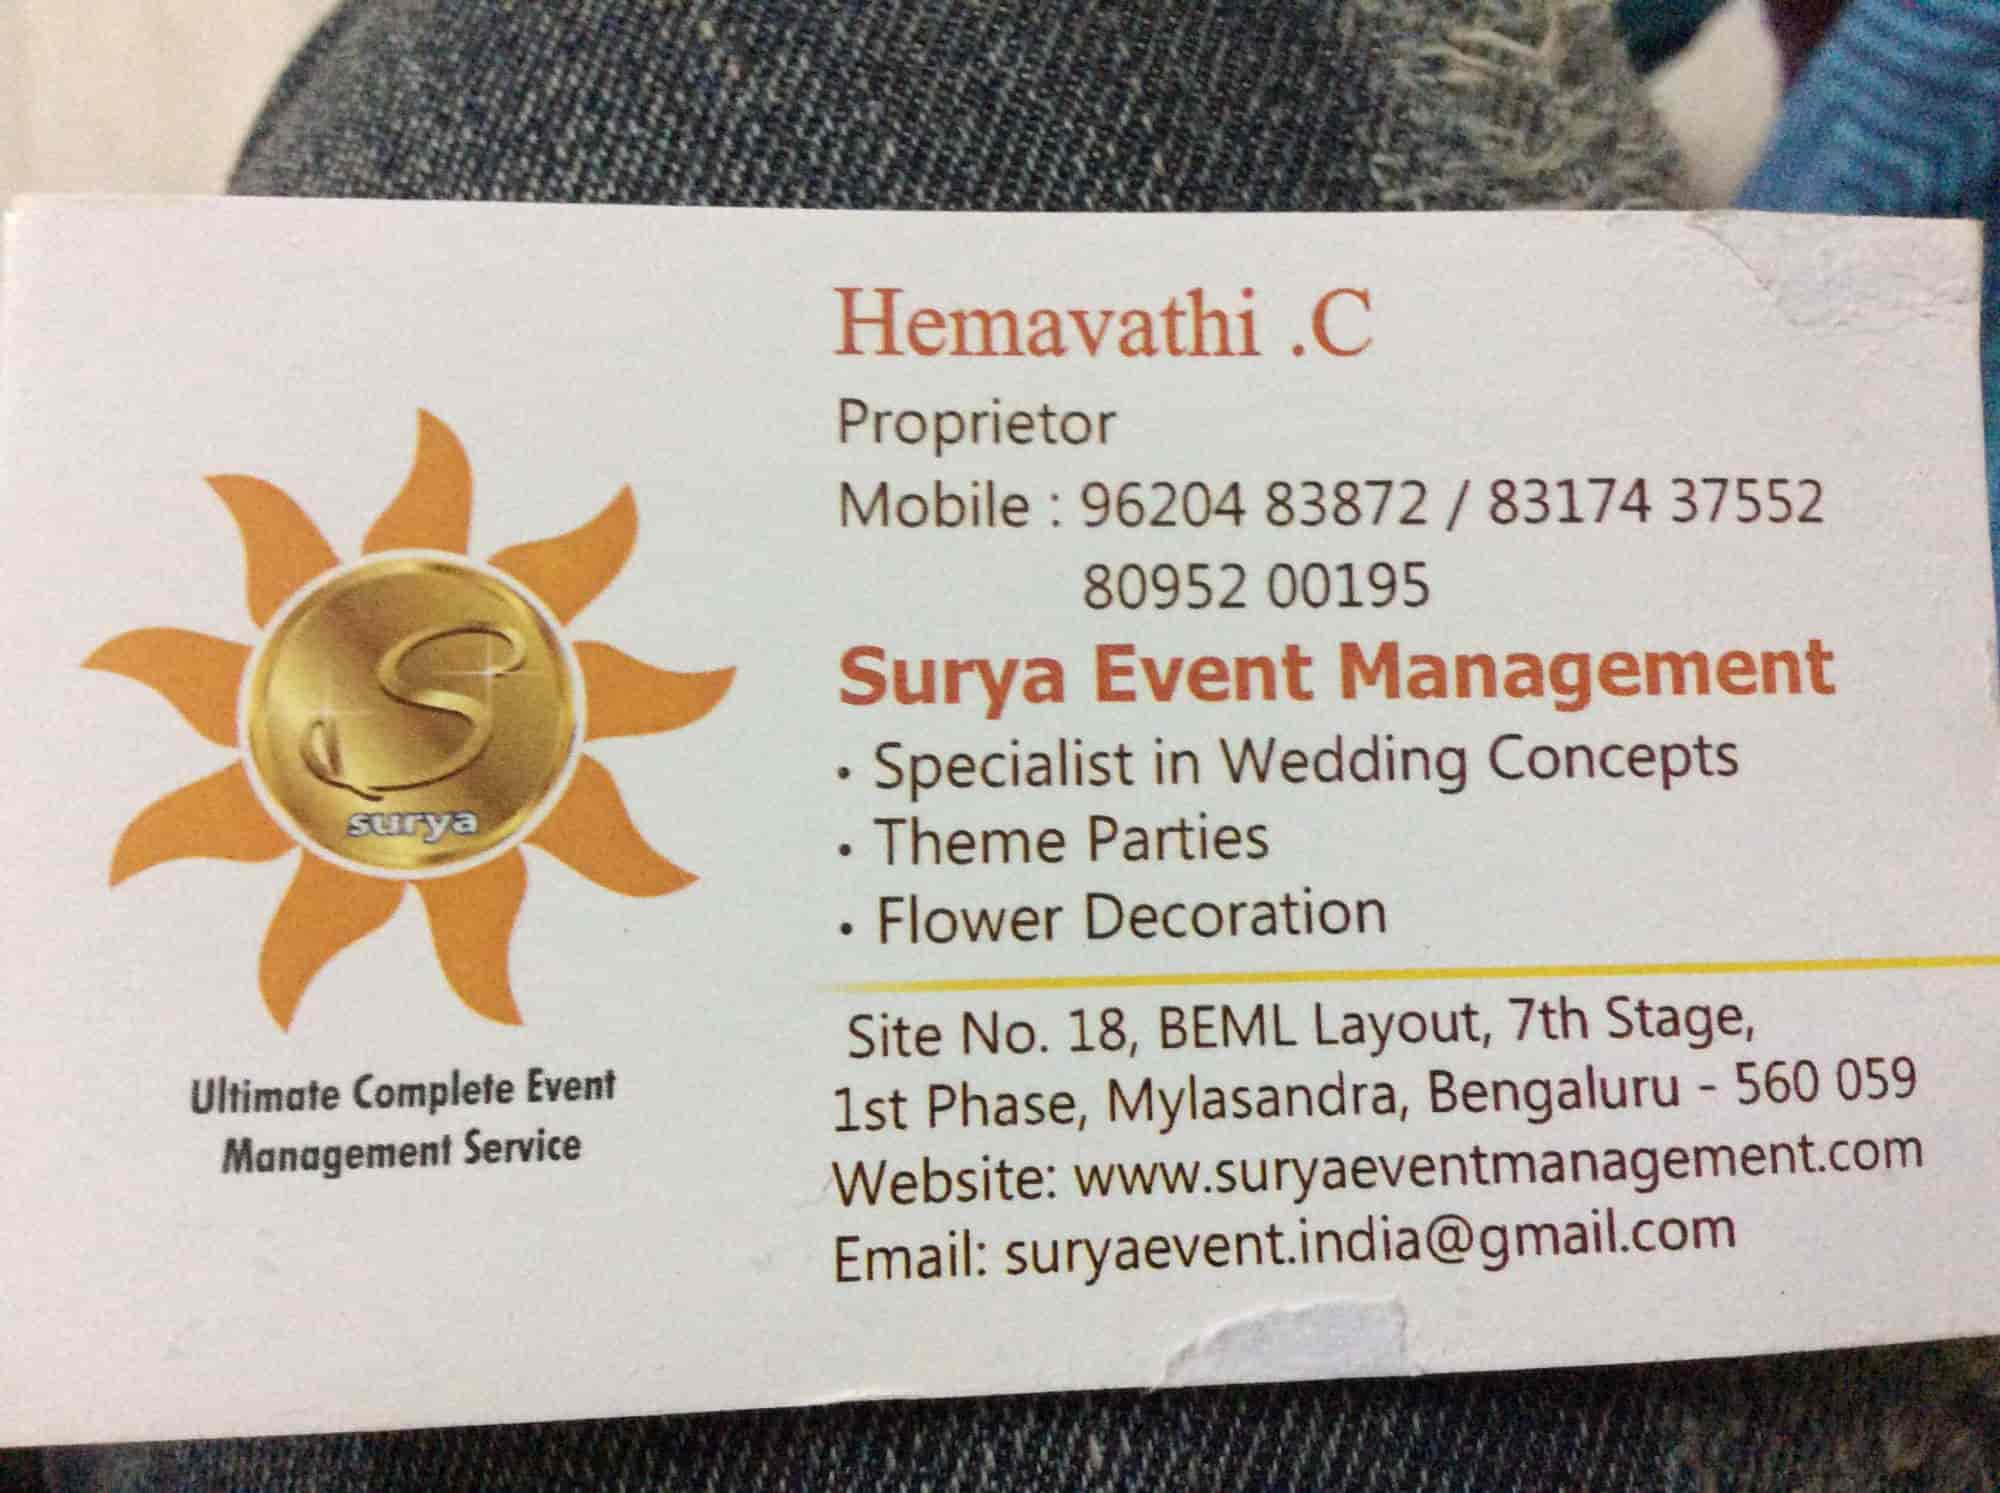 Surya event management photos mylasandra bangalore pictures visiting card surya event management photos mylasandra bangalore caterers junglespirit Image collections